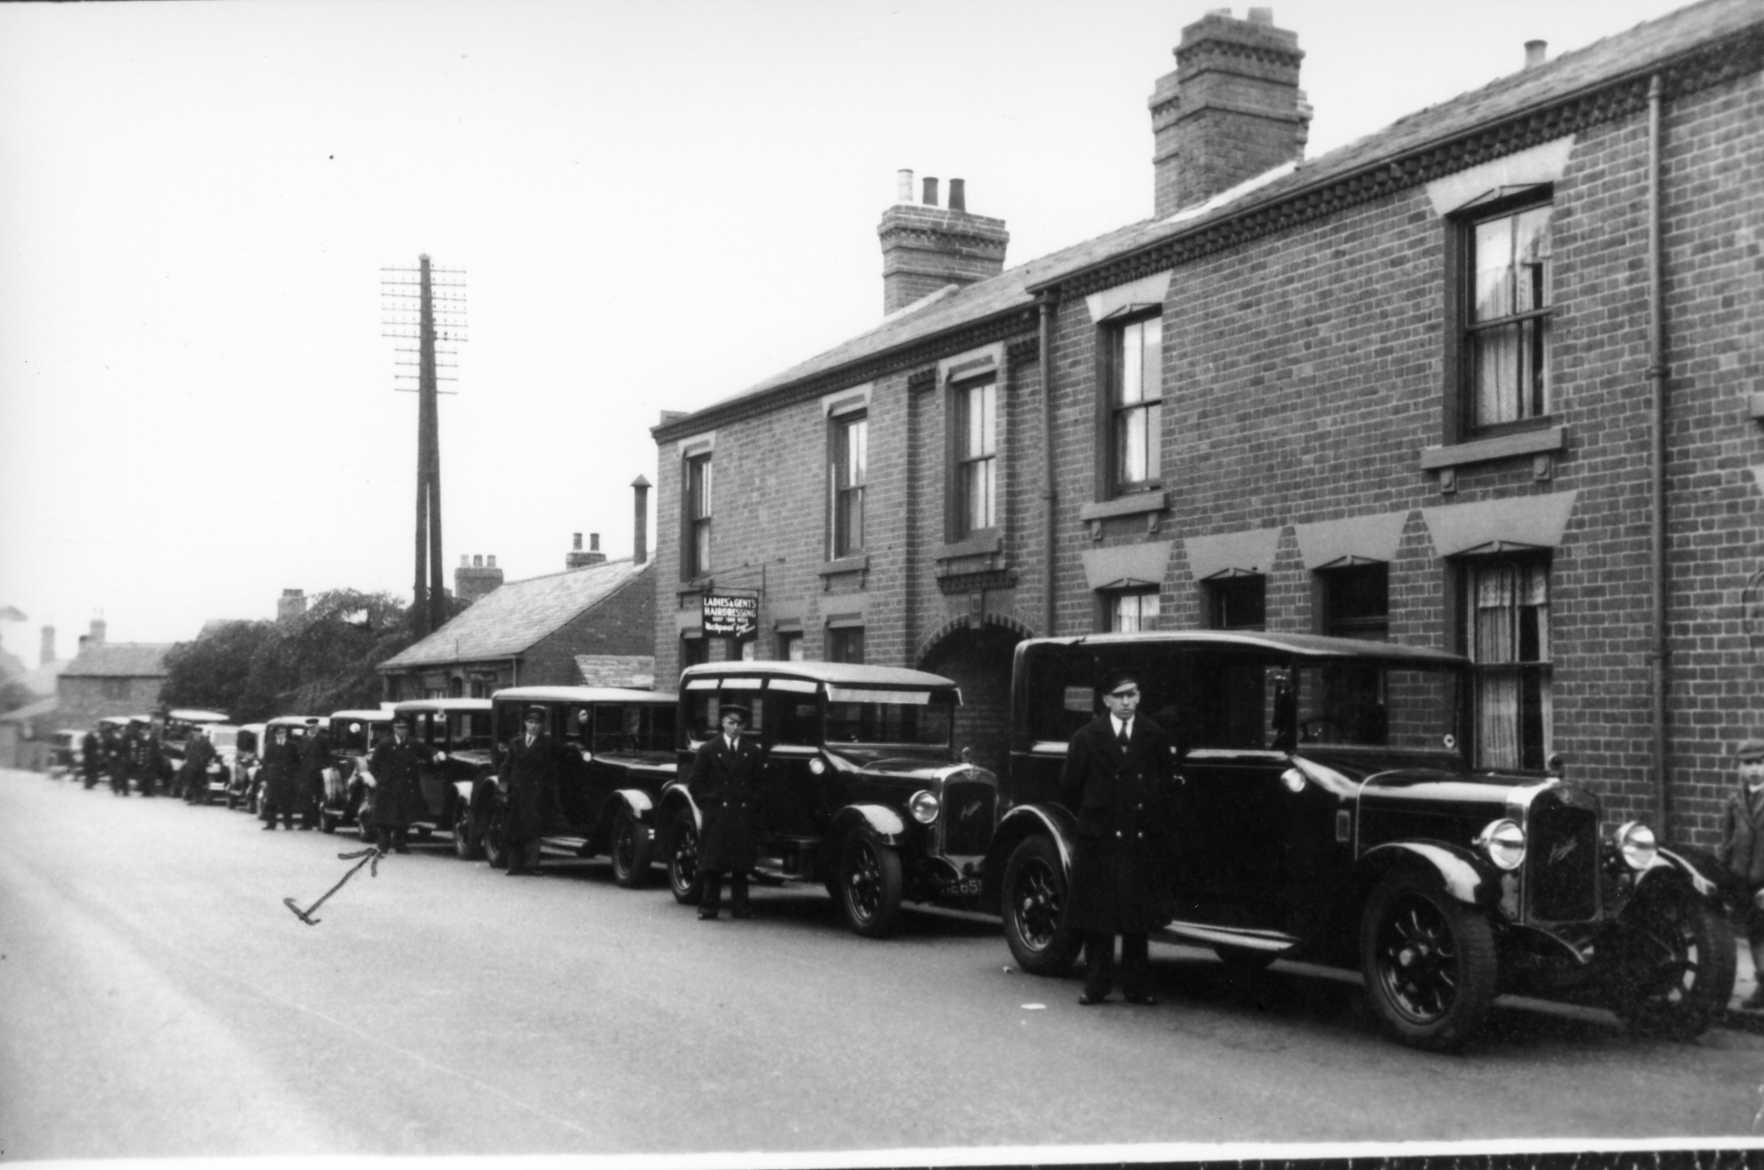 R Wetton & Son funeral vehicles, Markham Colliery disaster 1937